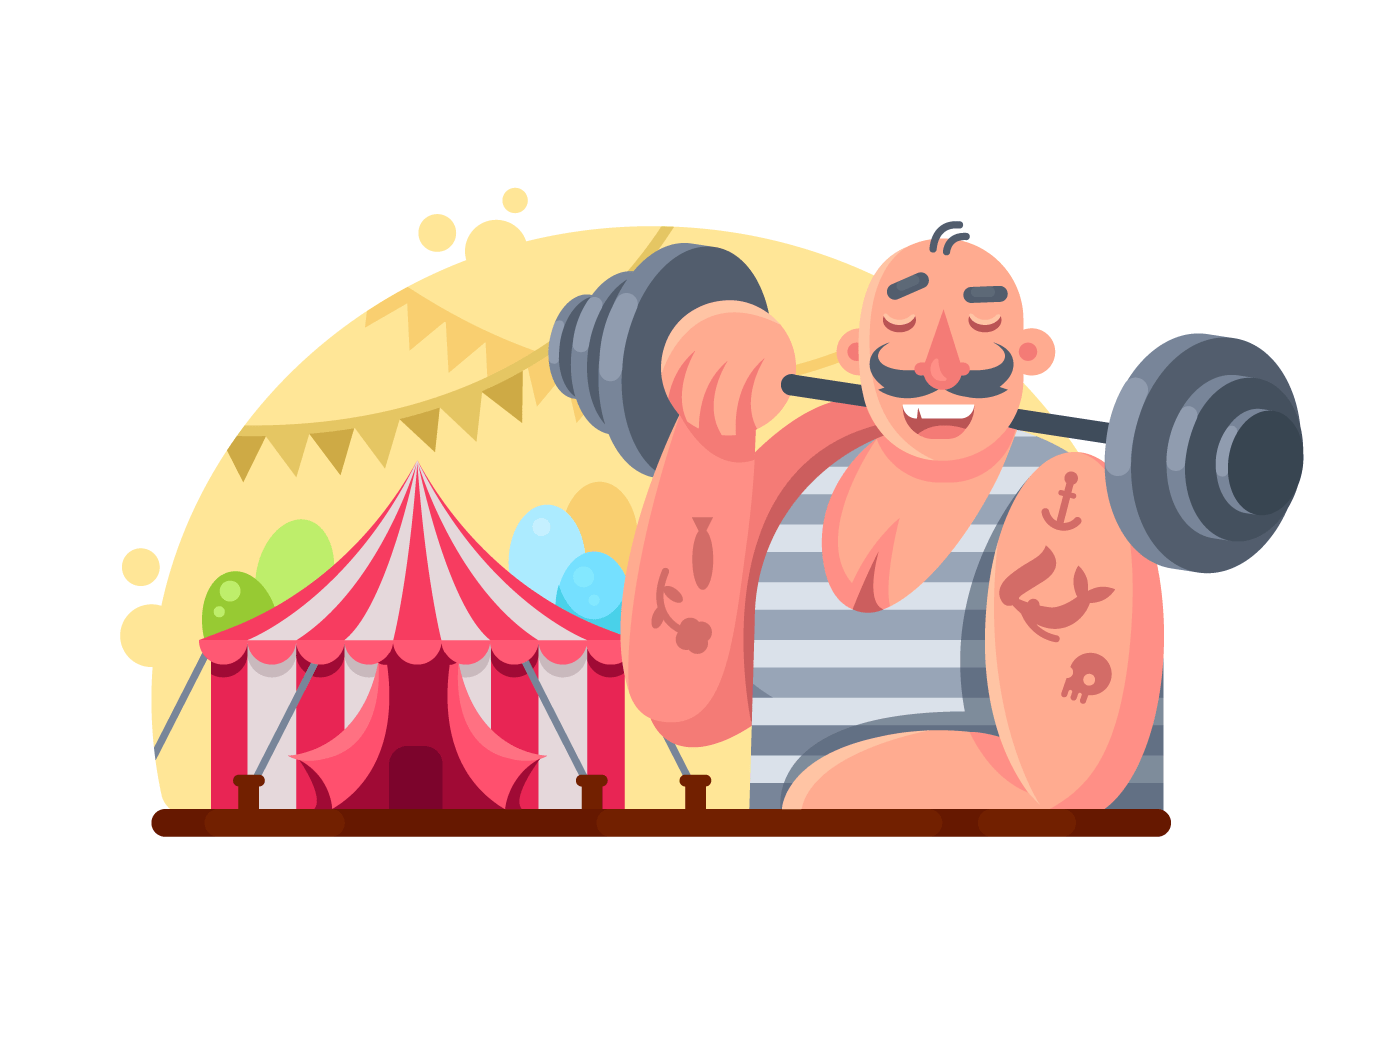 Funny circus weight lifter illustration